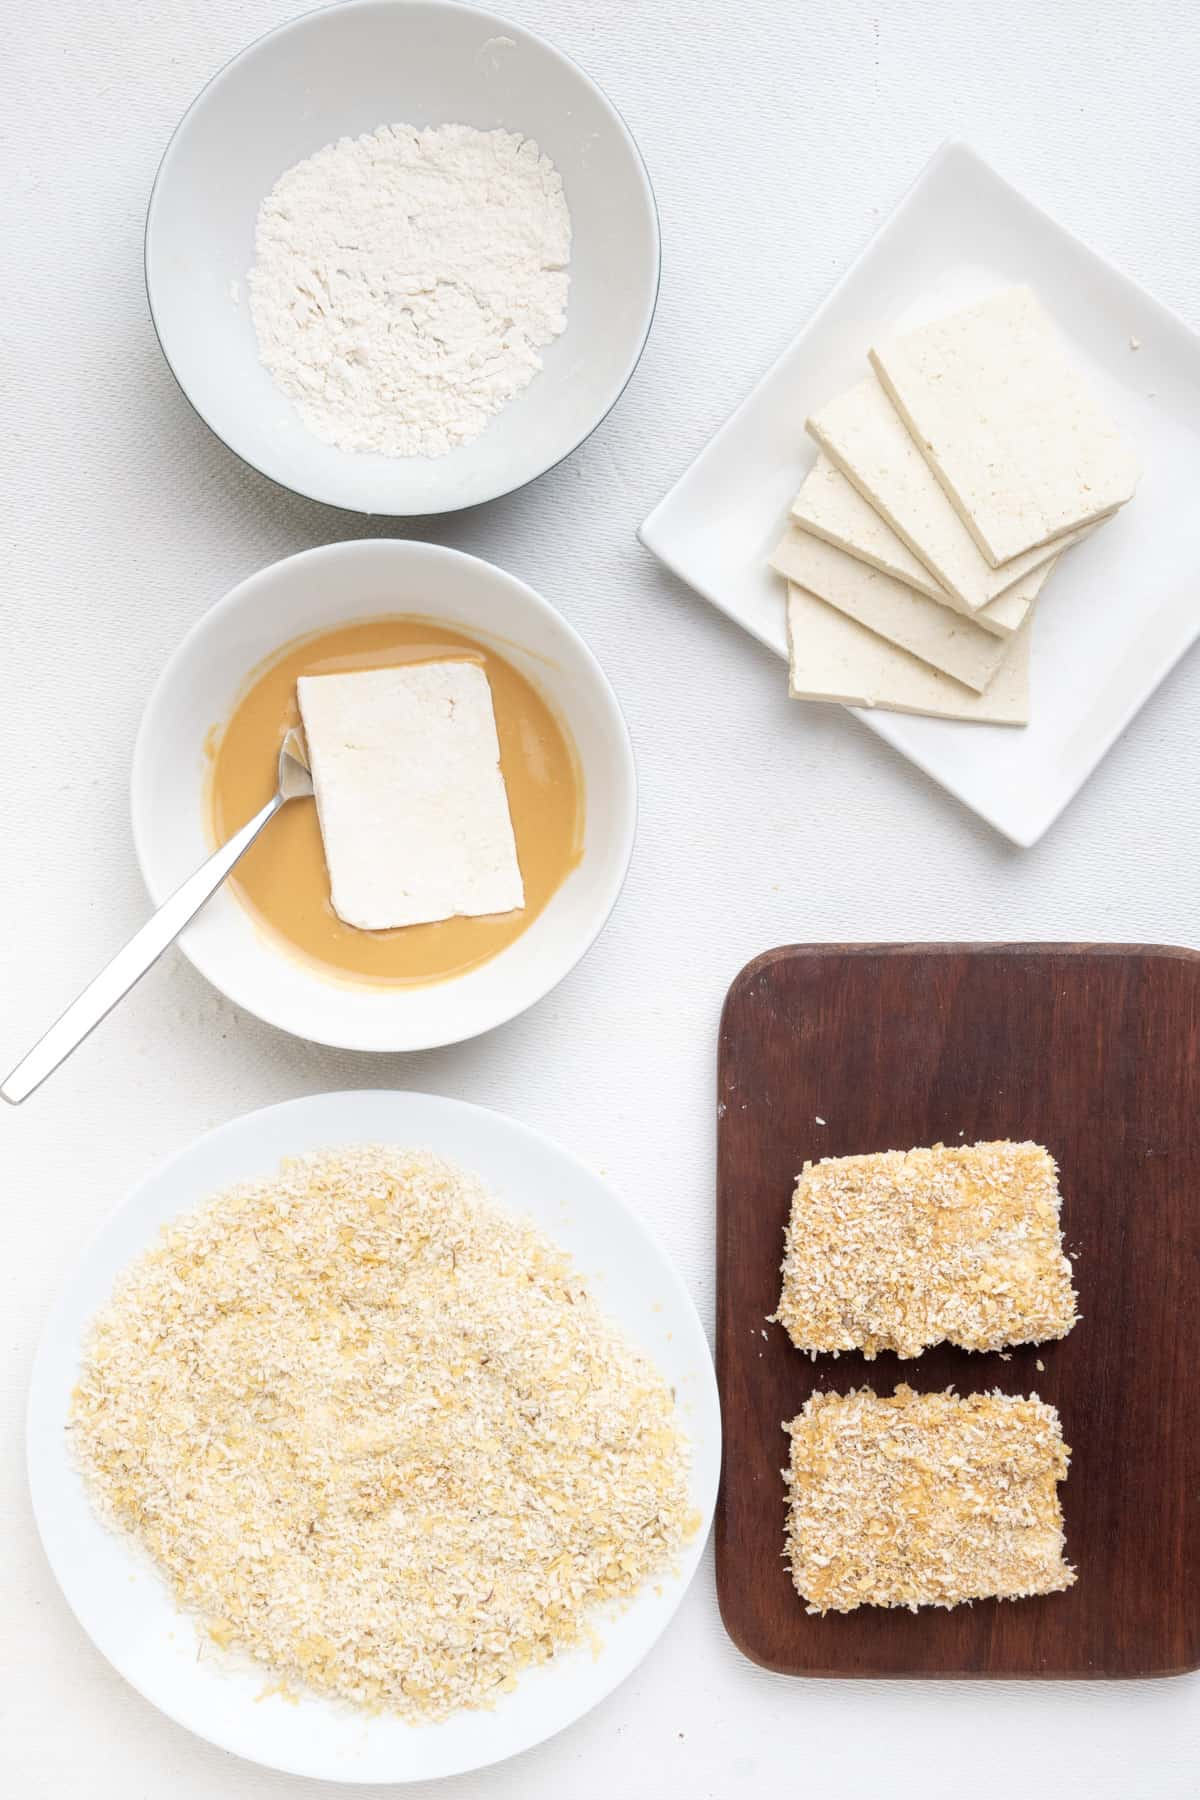 Illustrating the three coatings of the breading: White flour, batter and the seasoned breadcrumbs.